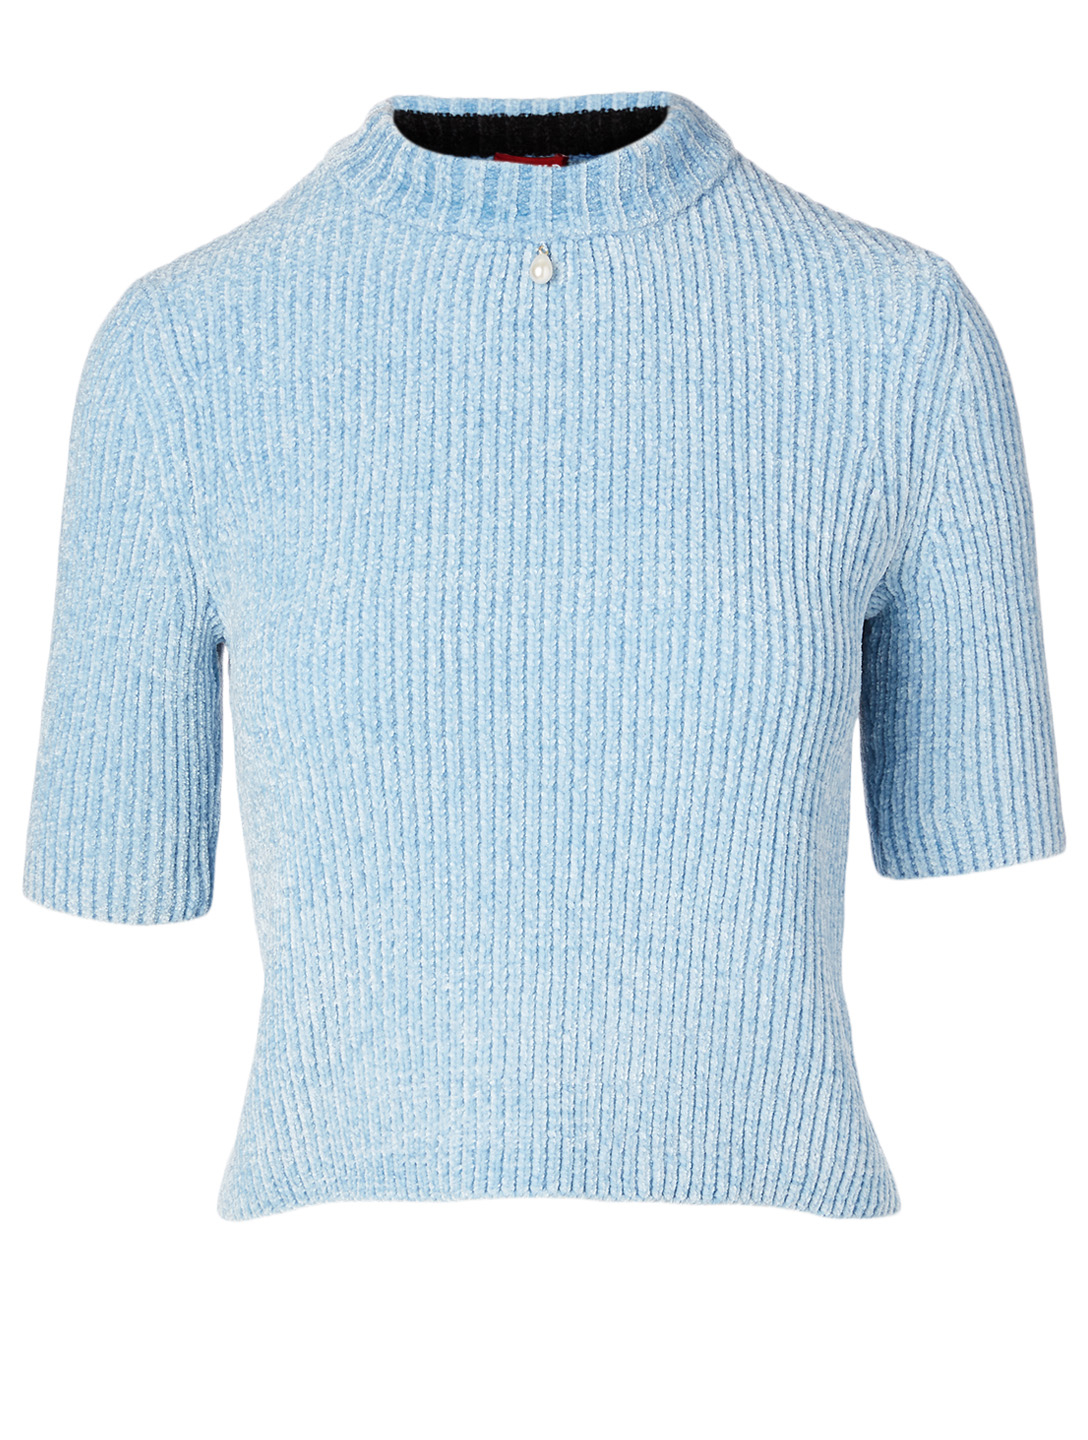 STAUD Moody Chenille Top Women's Blue